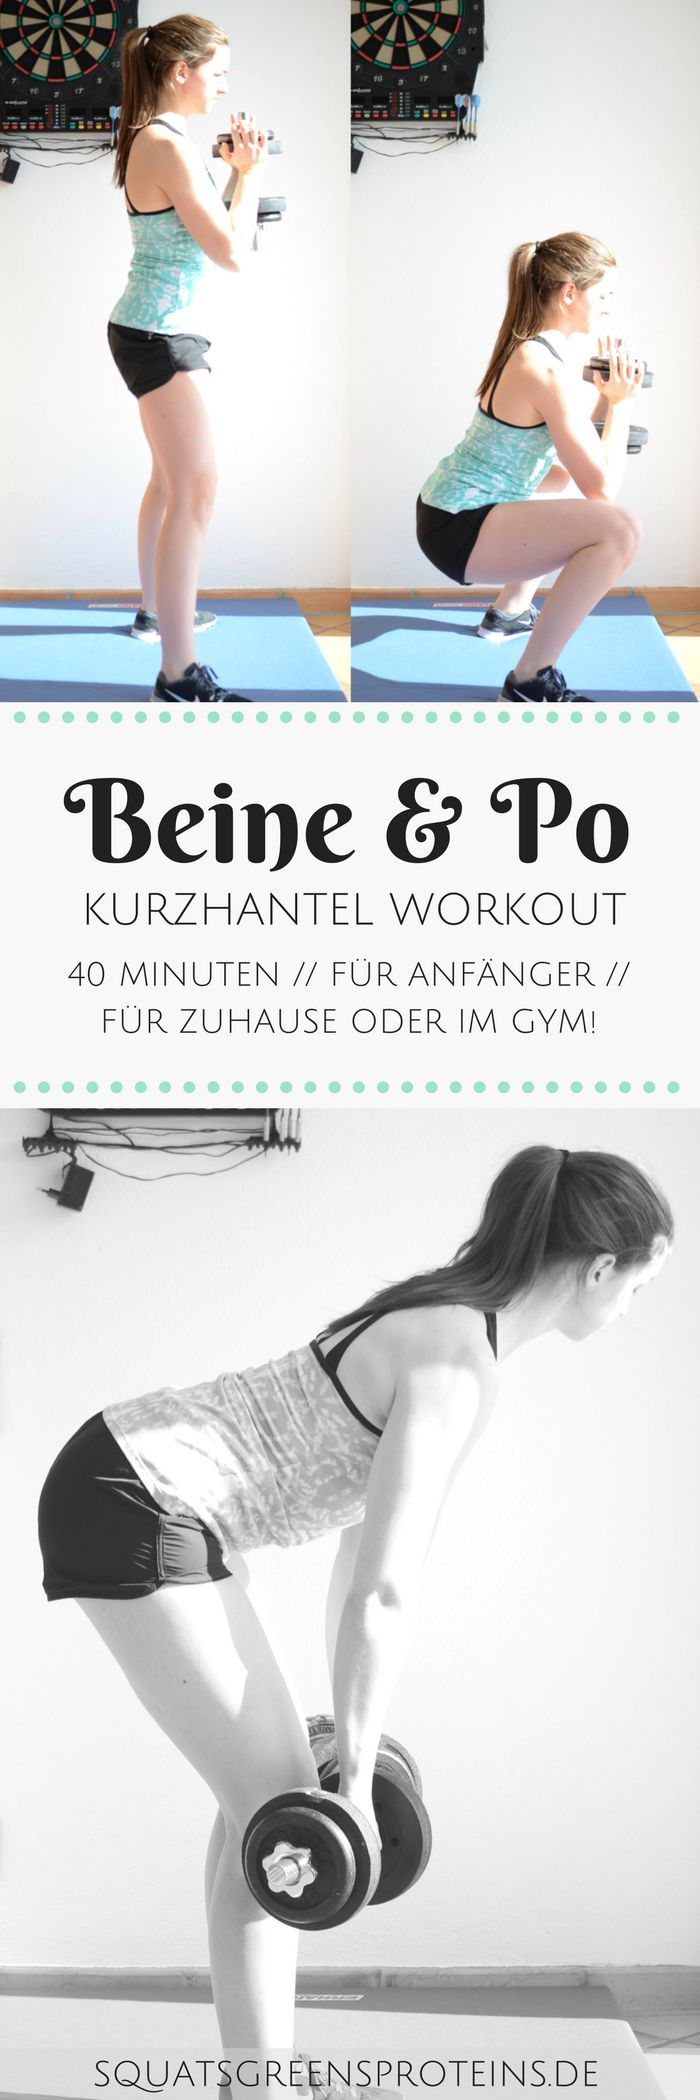 die besten 25 heim fitnessstudio training ideen auf pinterest fitnesstraining fitnessstudio. Black Bedroom Furniture Sets. Home Design Ideas